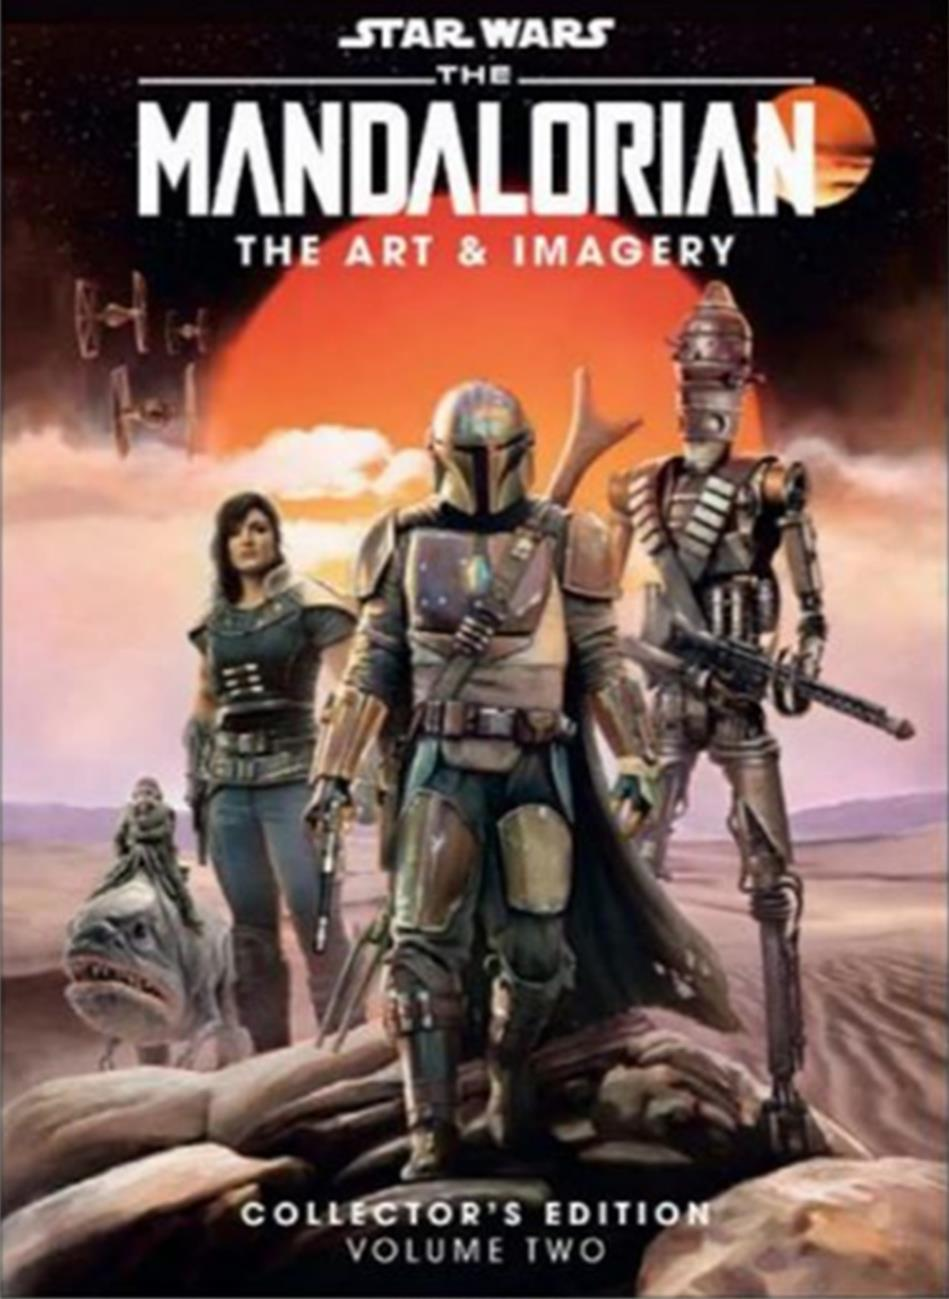 Star Wars The Mandalorian: The Art And Imagery - Collector's Edition Volume Two